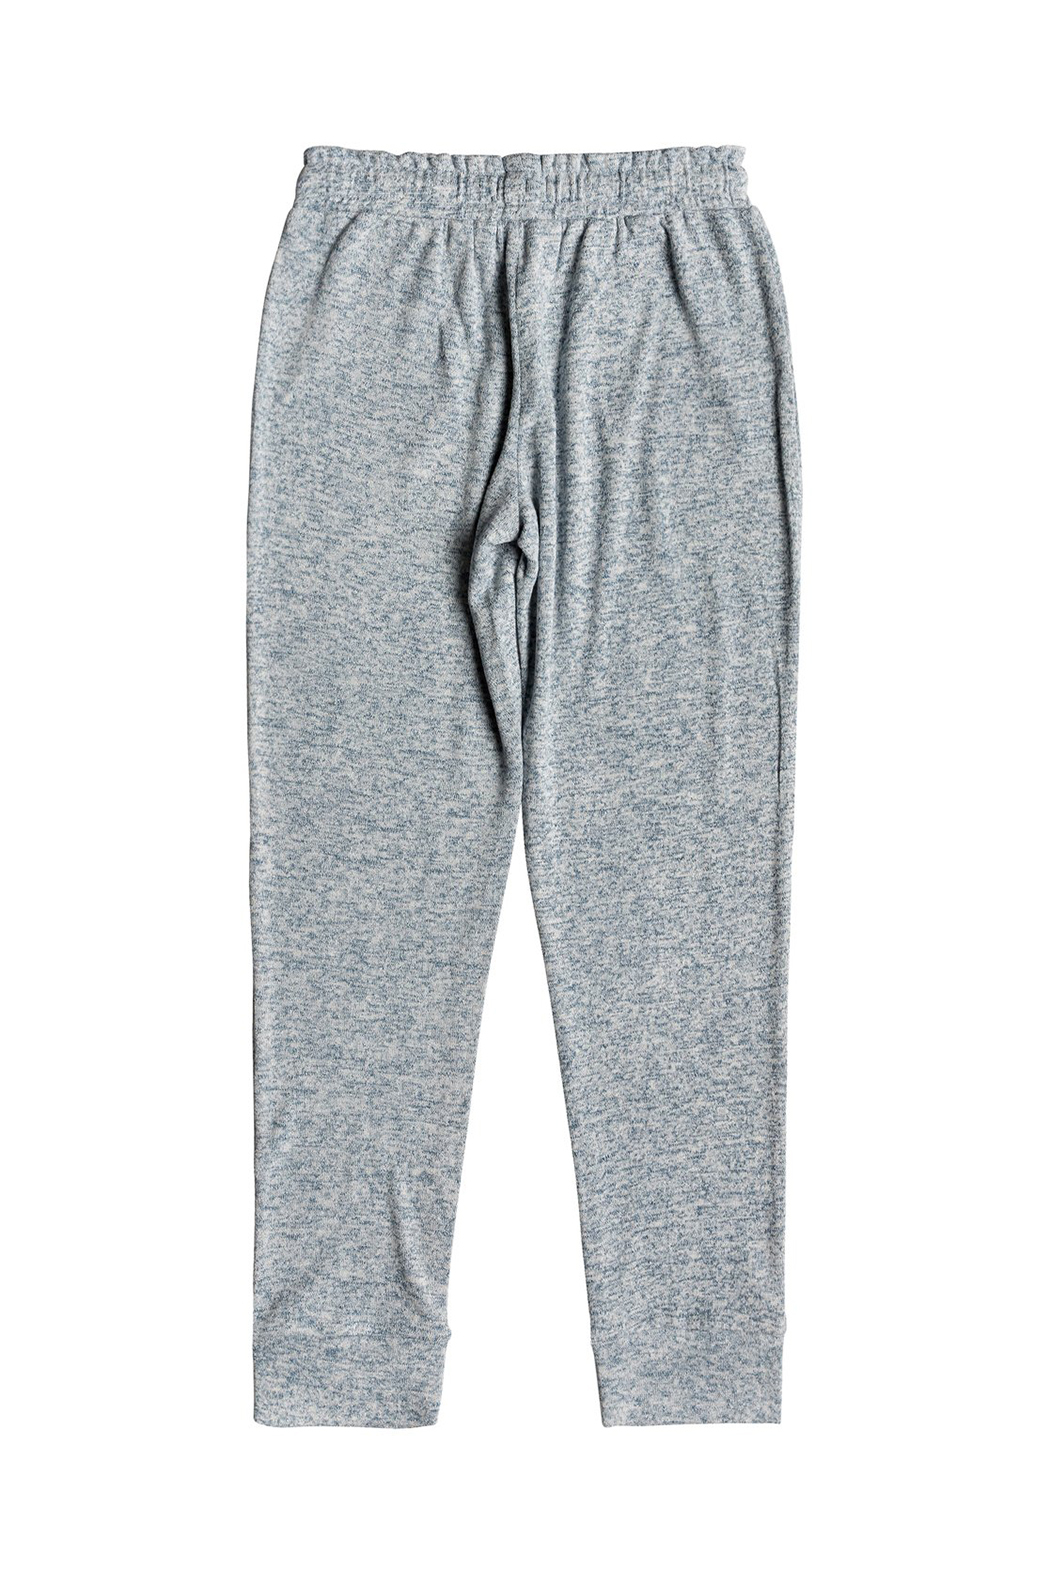 Roxy Flying Butterfly Joggers - Front Full Image